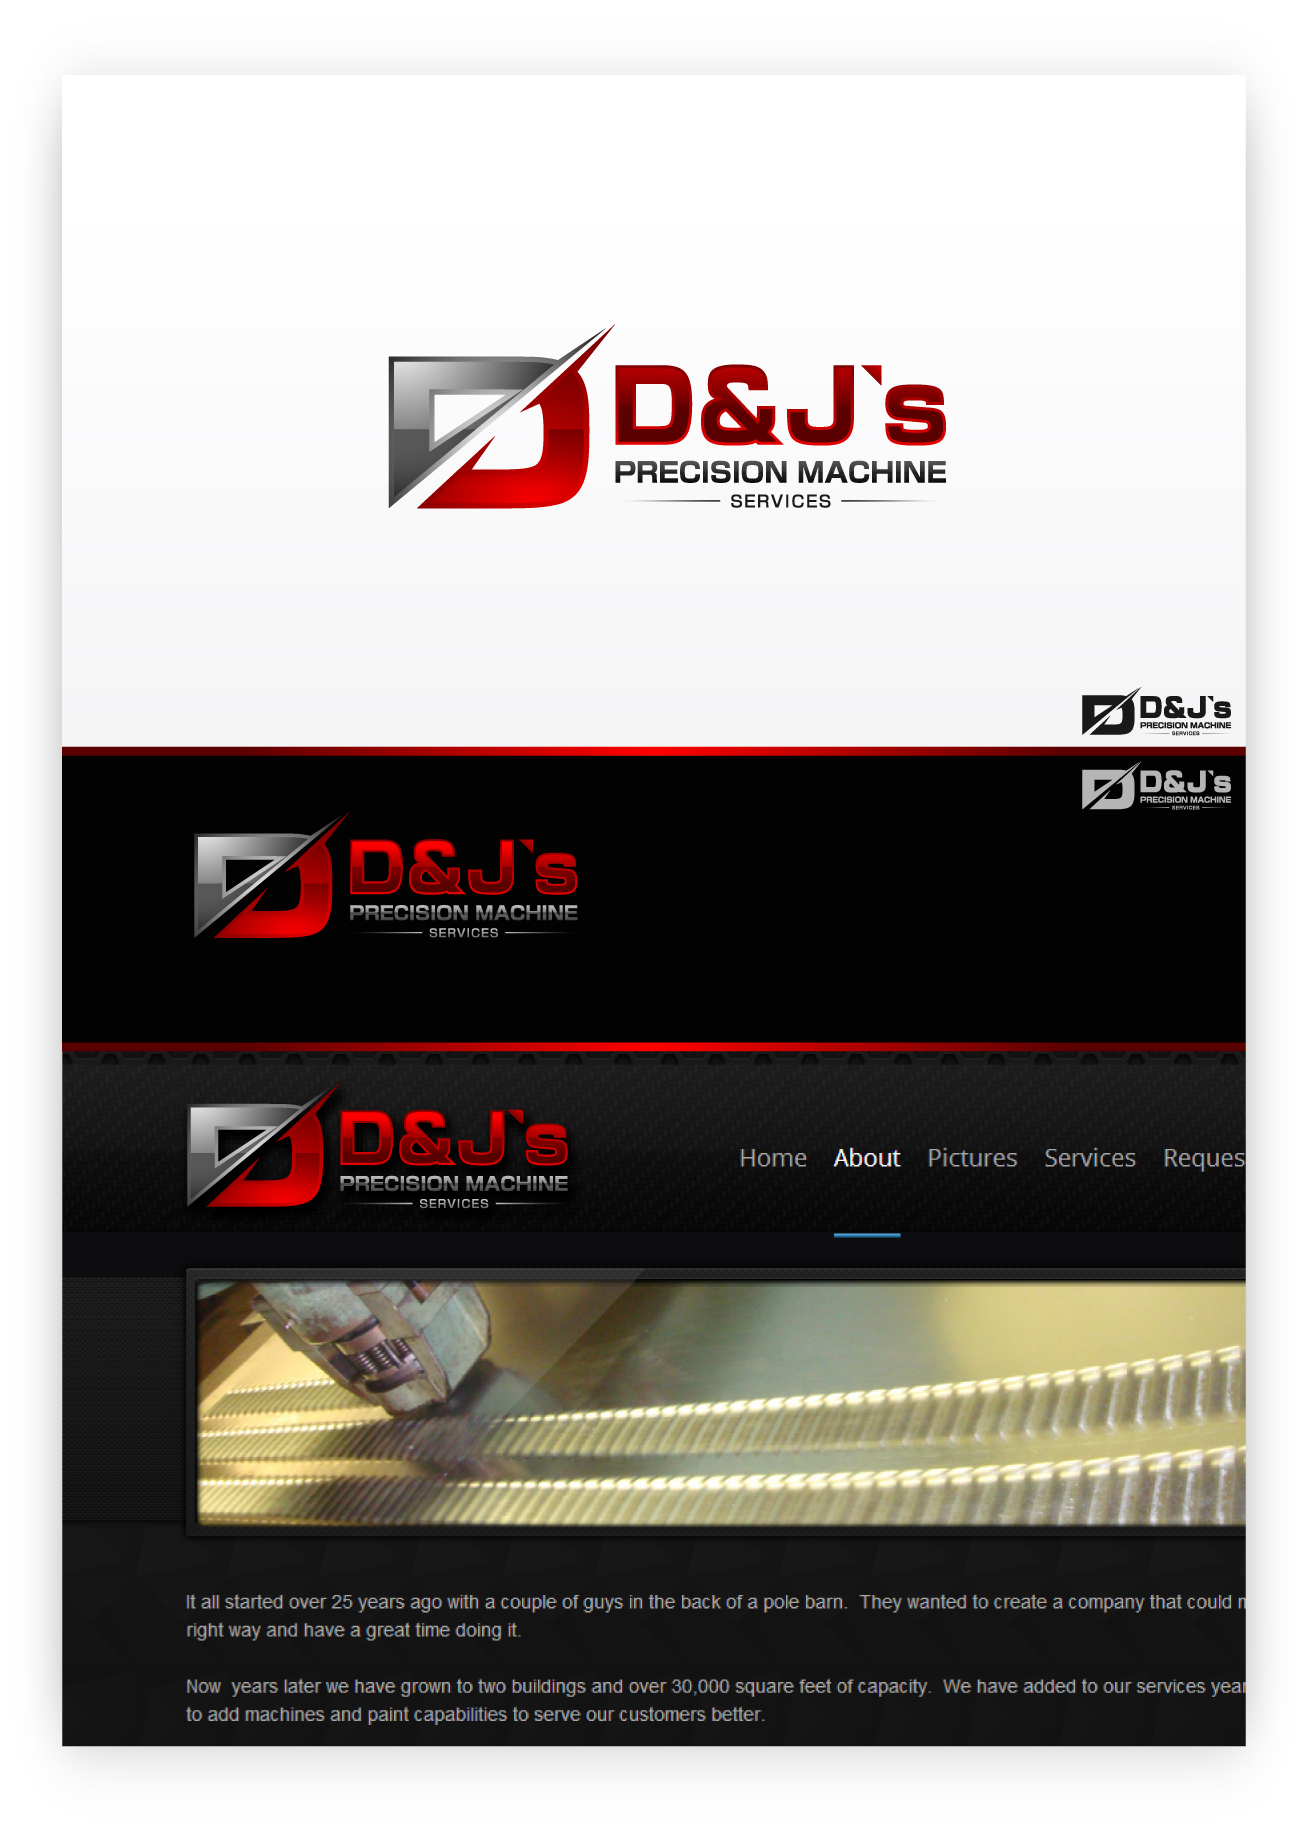 Logo Design by zoiDesign - Entry No. 88 in the Logo Design Contest Creative Logo Design for D & J's Precision Machine Services.